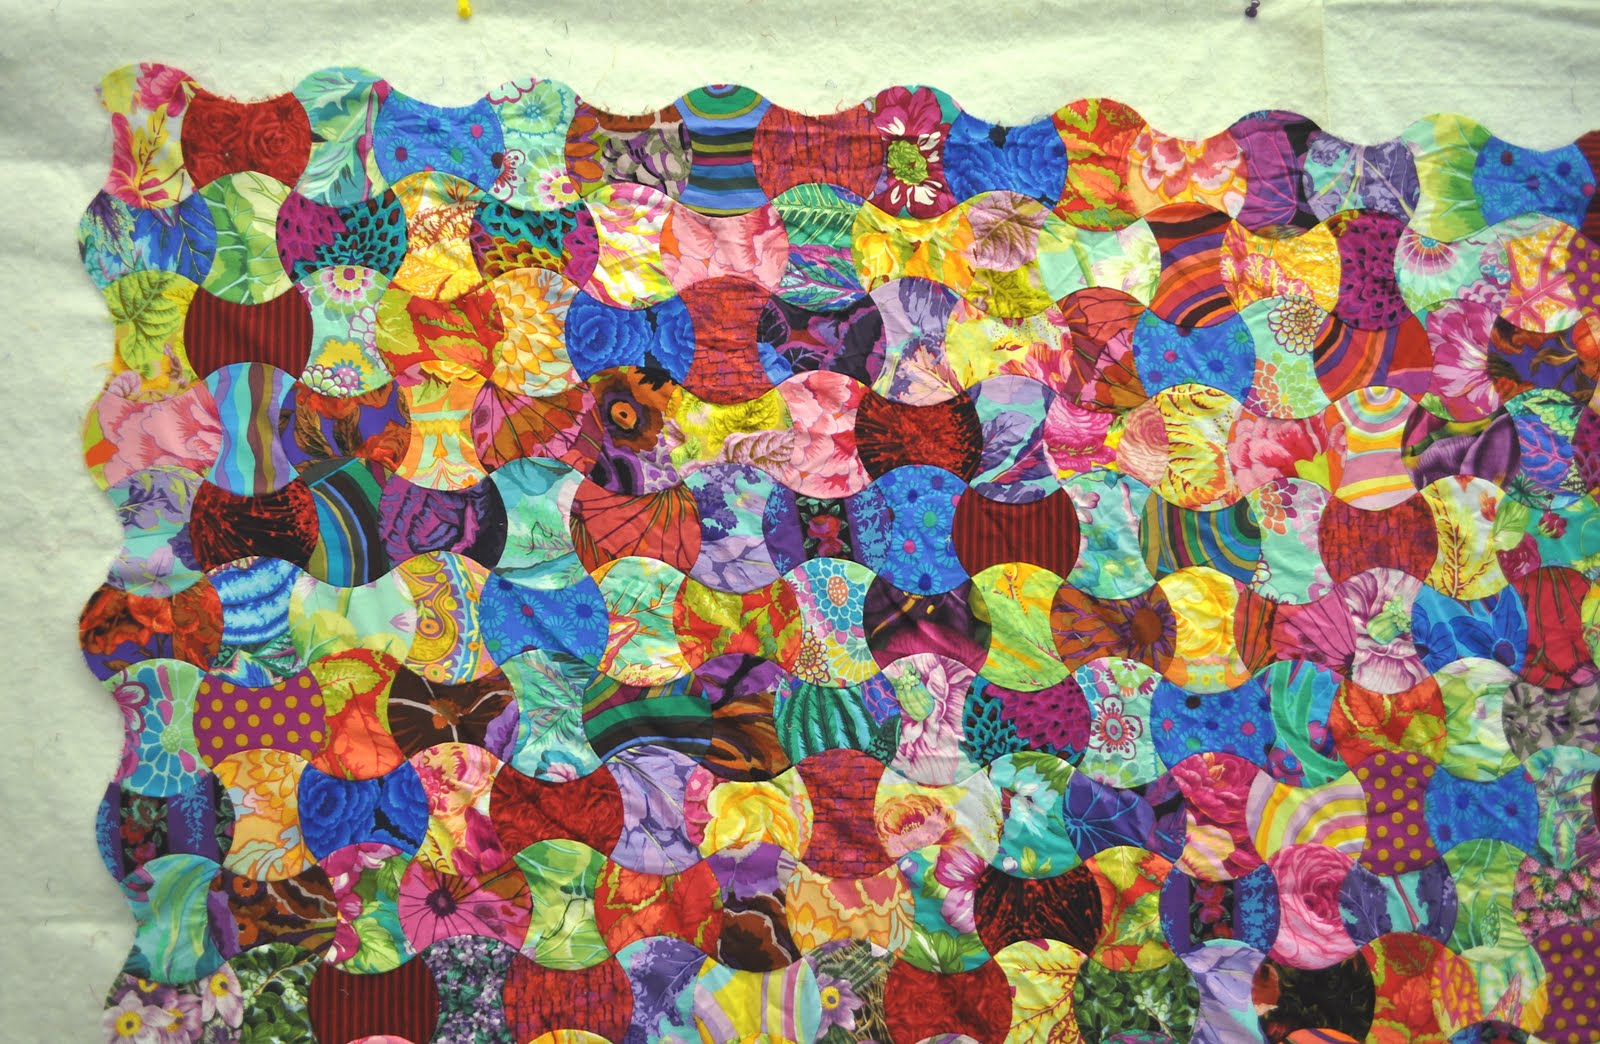 luann kessi apple core quilt top18 rows done the apple core top 10 posts of 2012 1600x1044